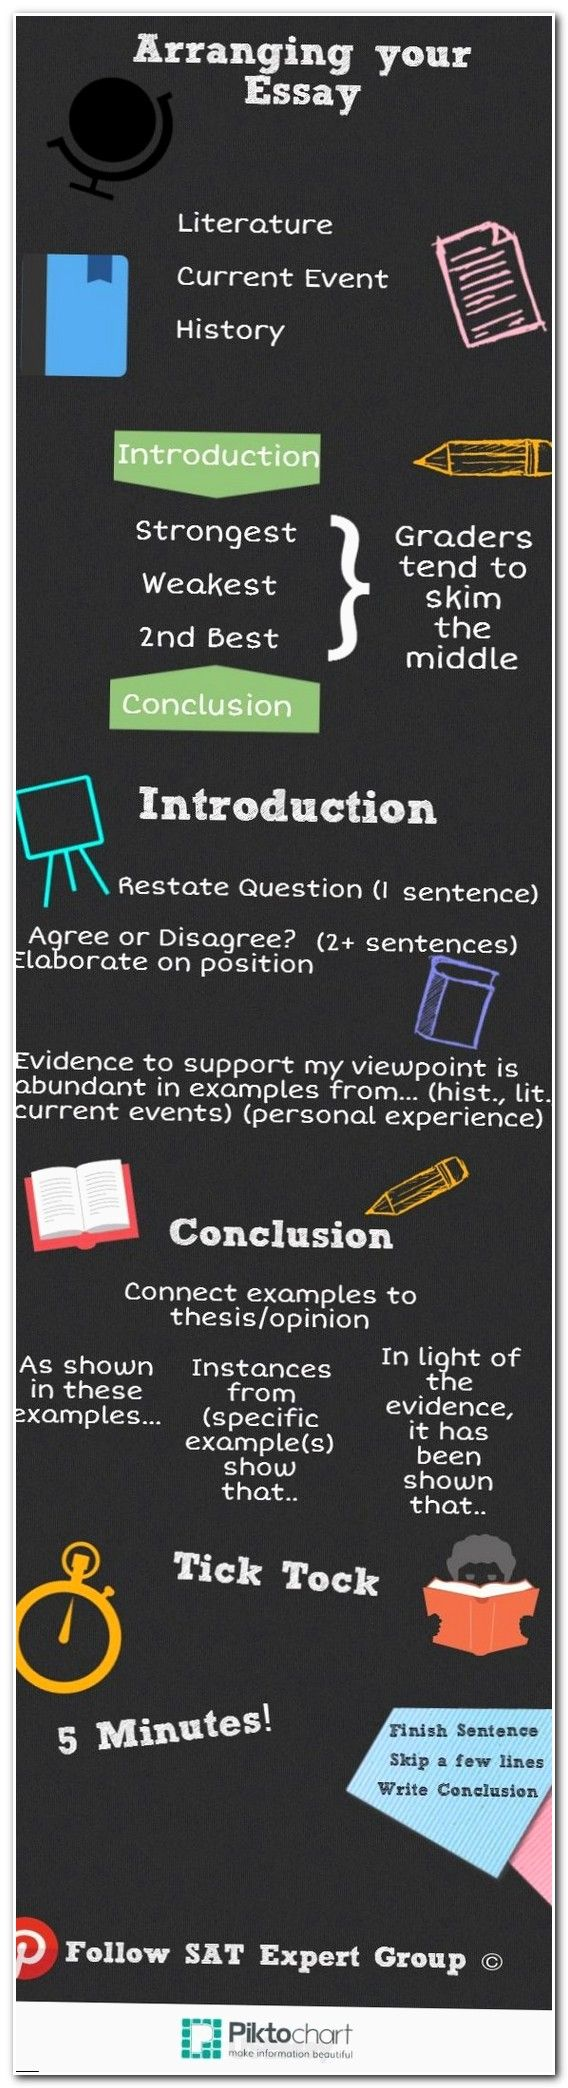 essay essaywriting a definition paragraph steps to writing an argumentative essay reword - Steps To Writing An Essay For College